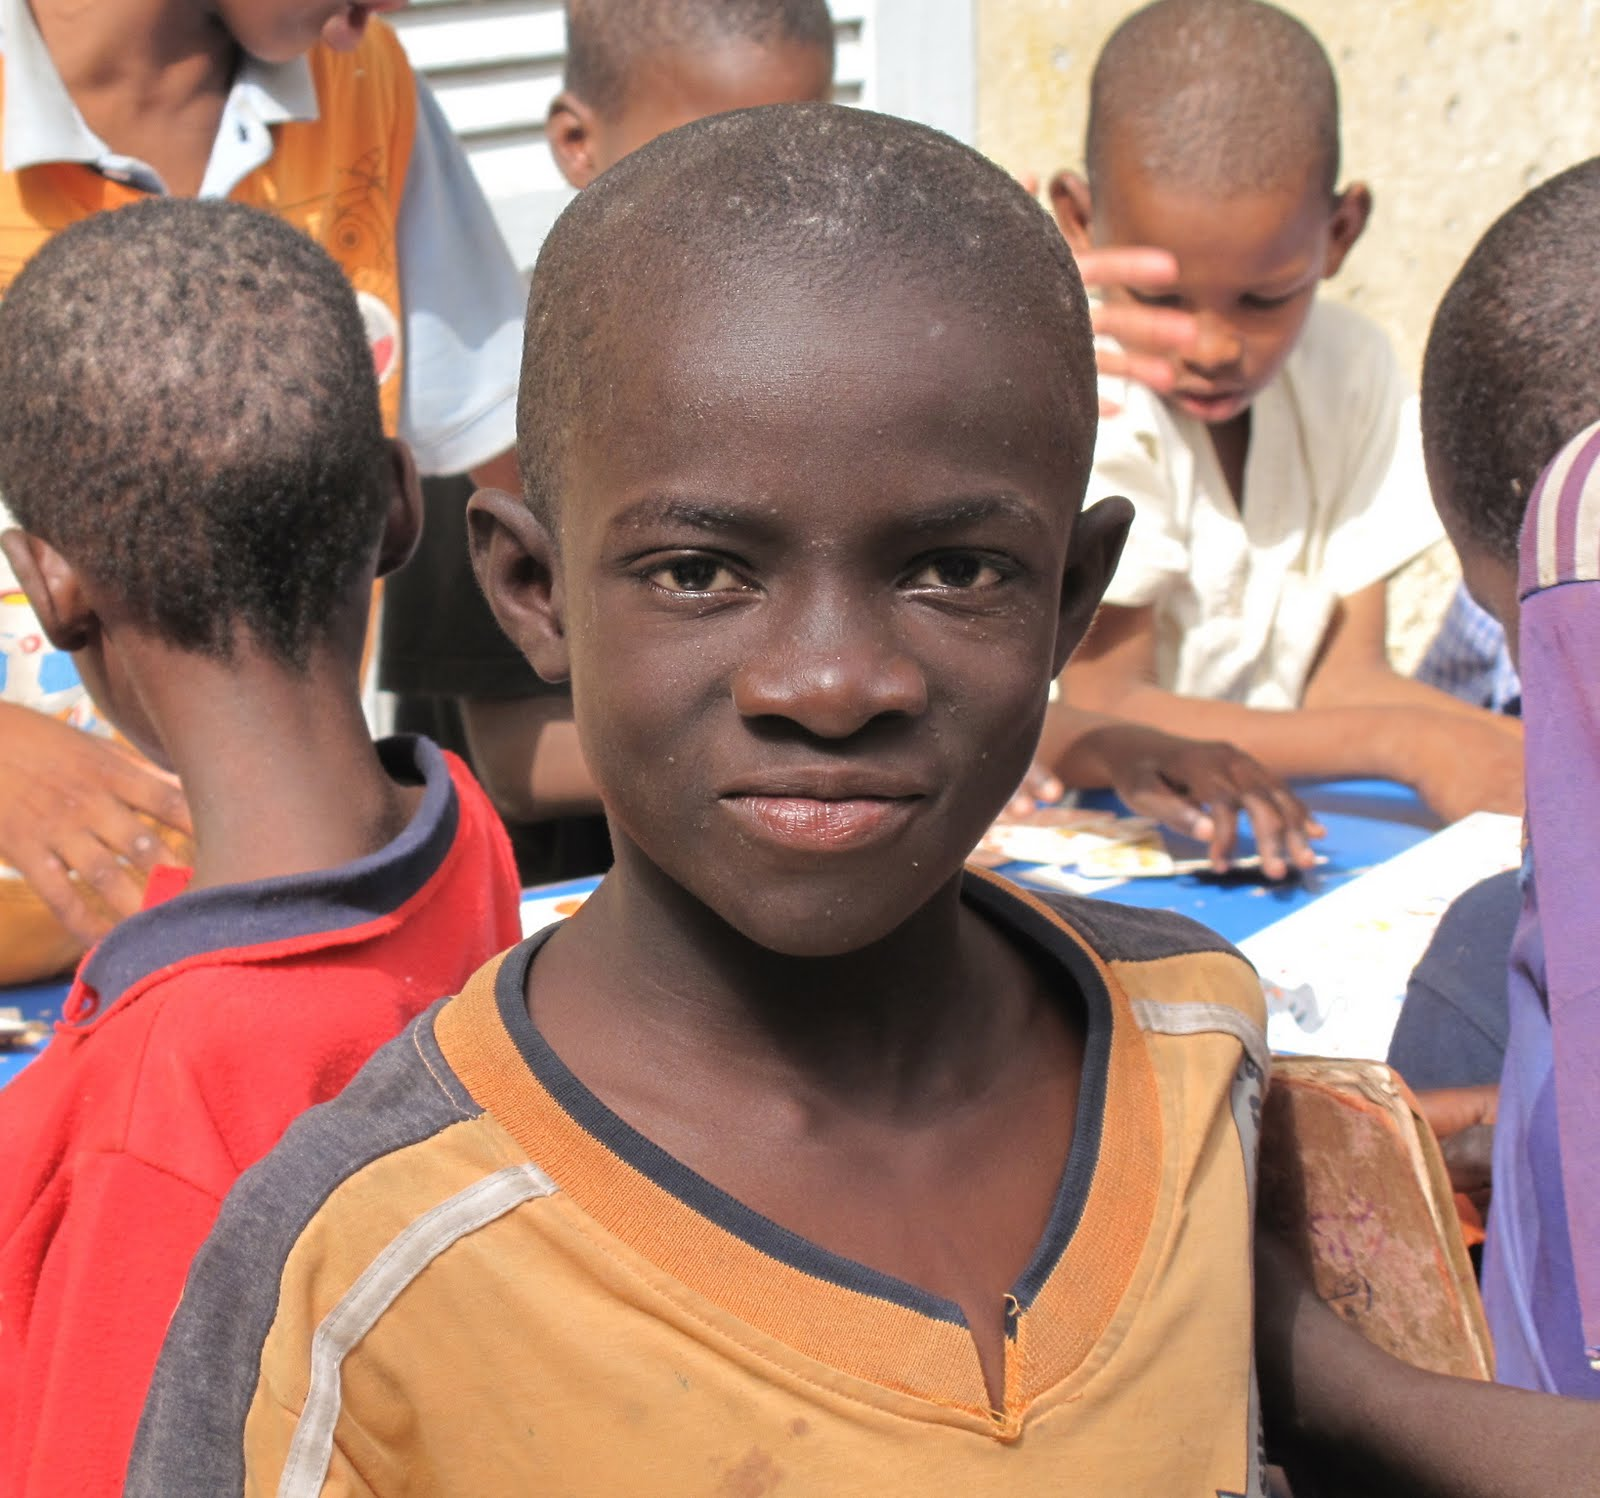 CZs Report: Children of Senegal | Father knows best